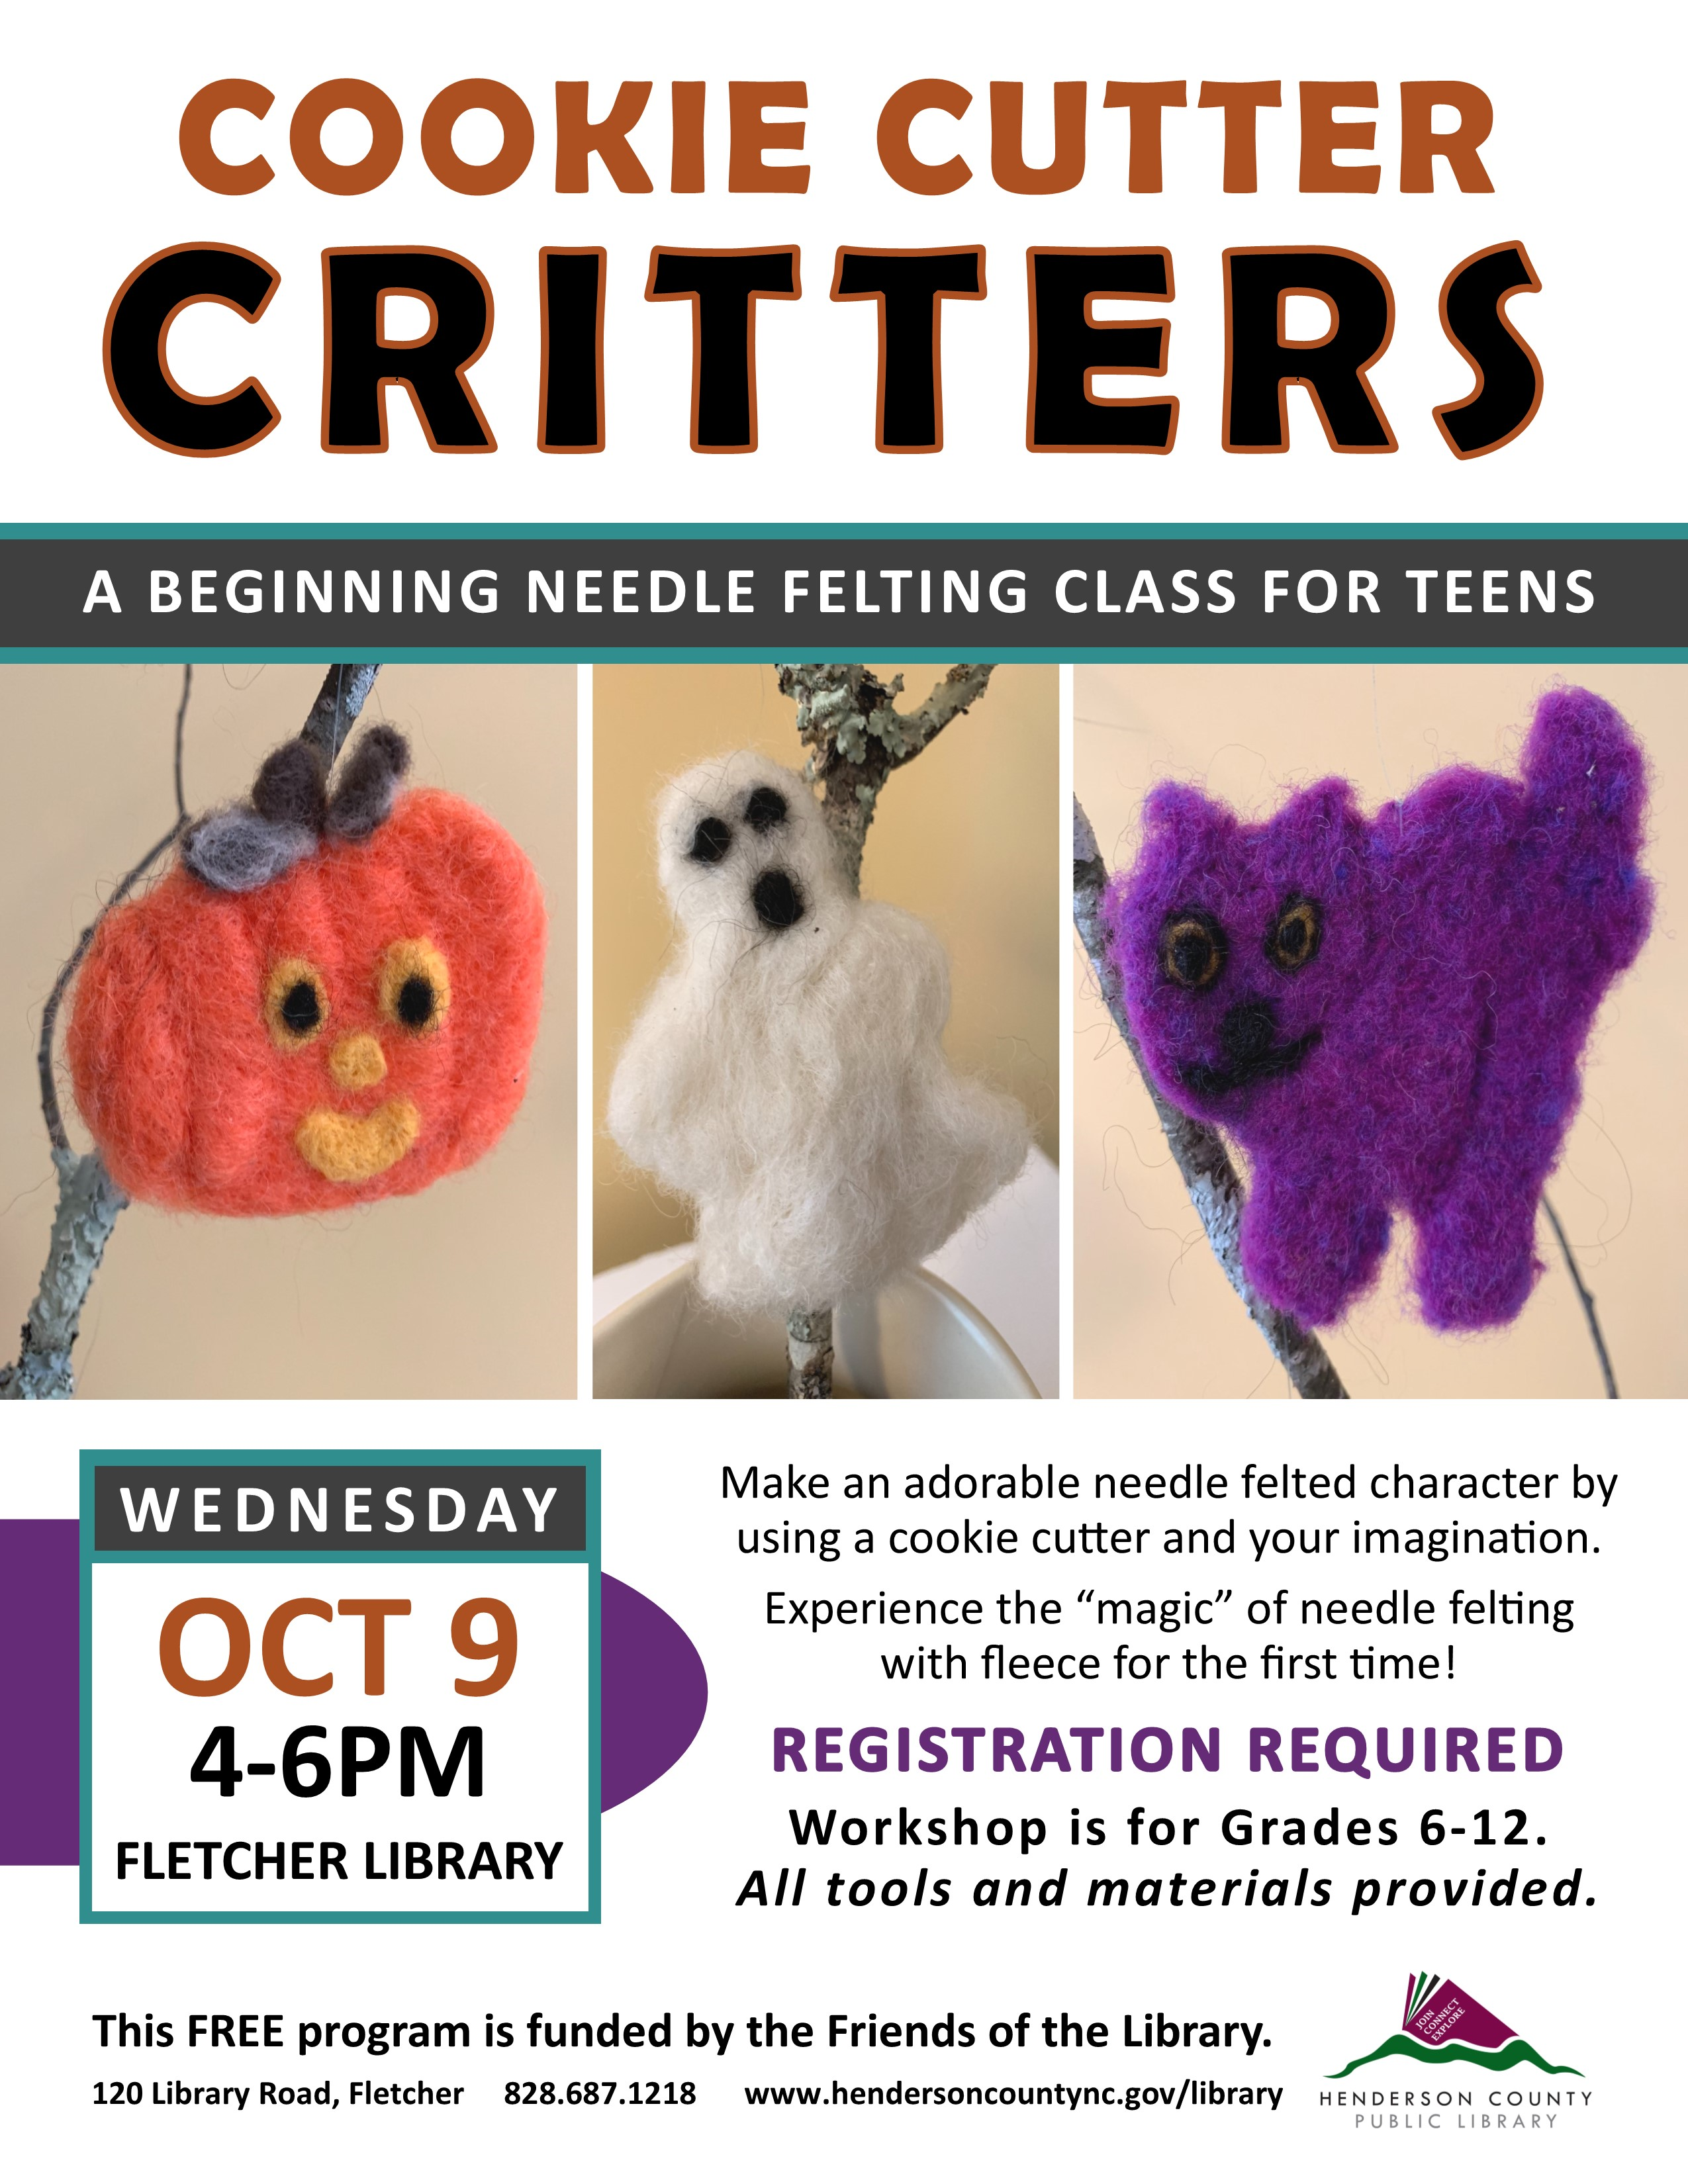 Cookie Cutter Critters: A Beginning Needle Felting Class